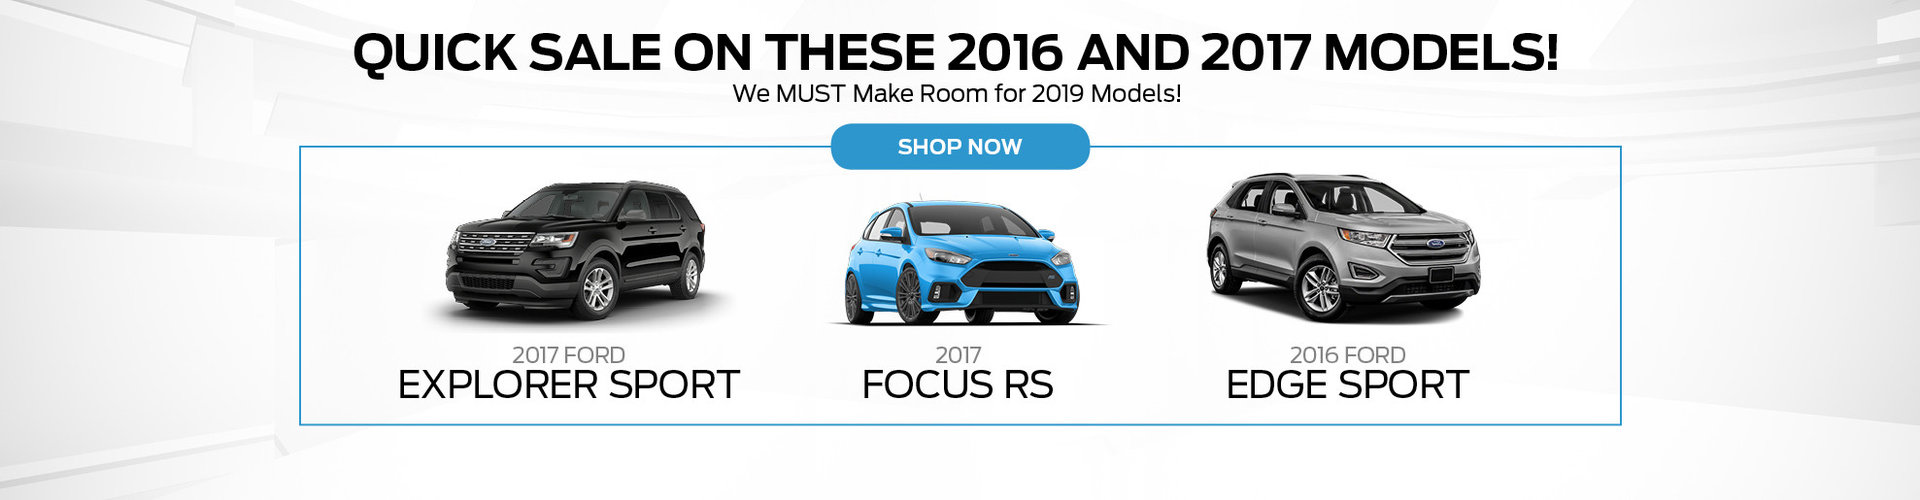 Quick Sale on 2016 and 2017 models